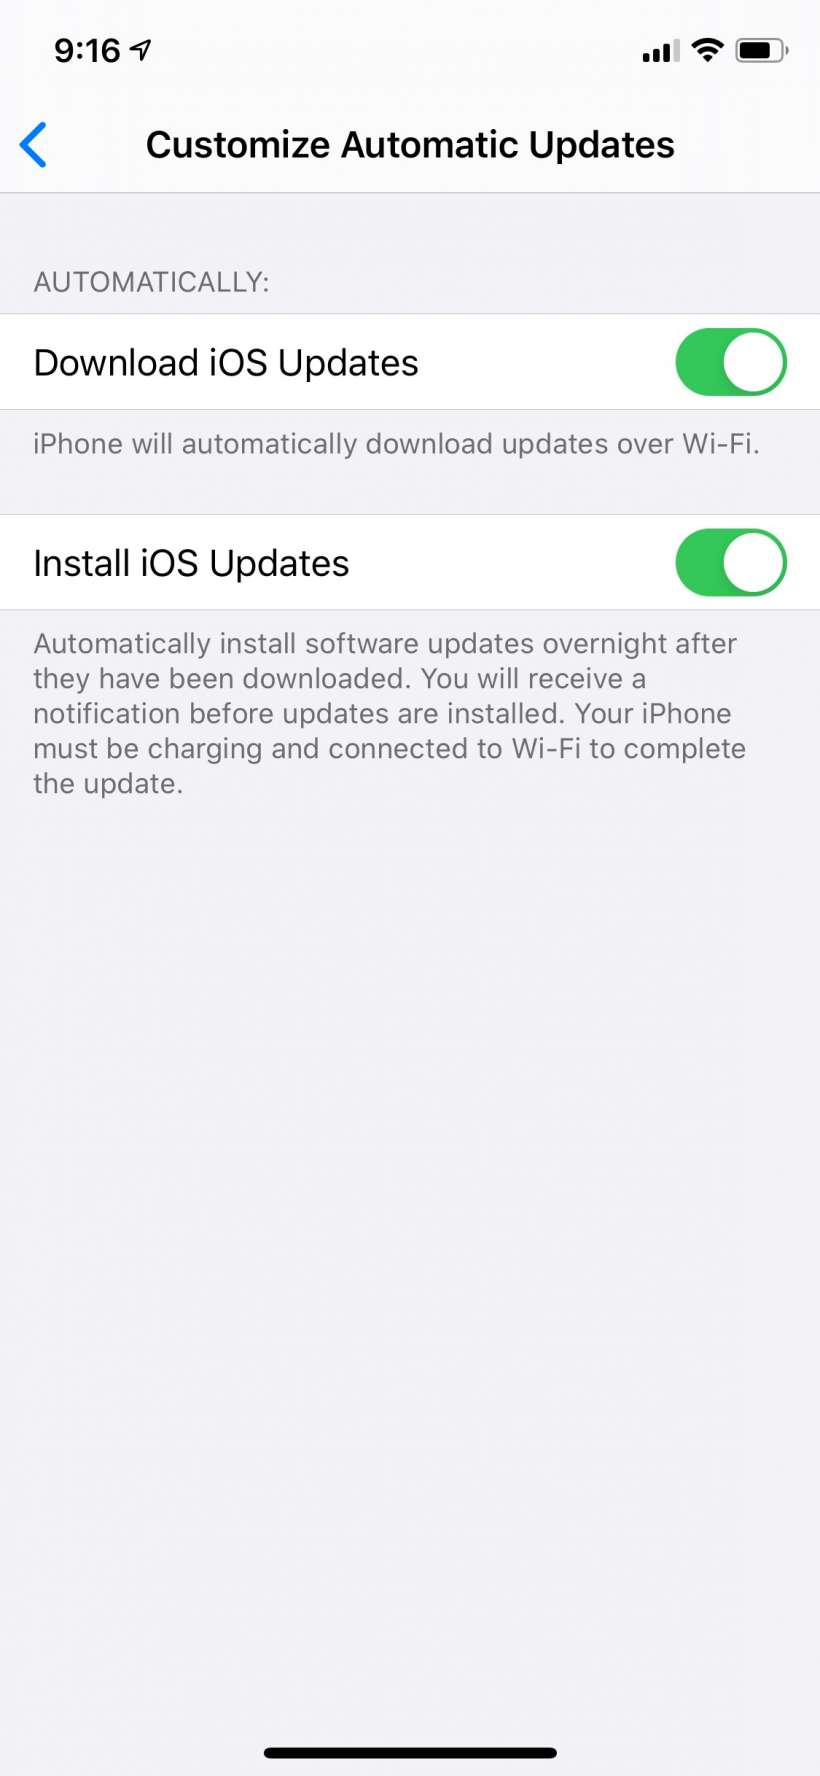 How to customize your automatic iOS updates on iPhone and iPad.